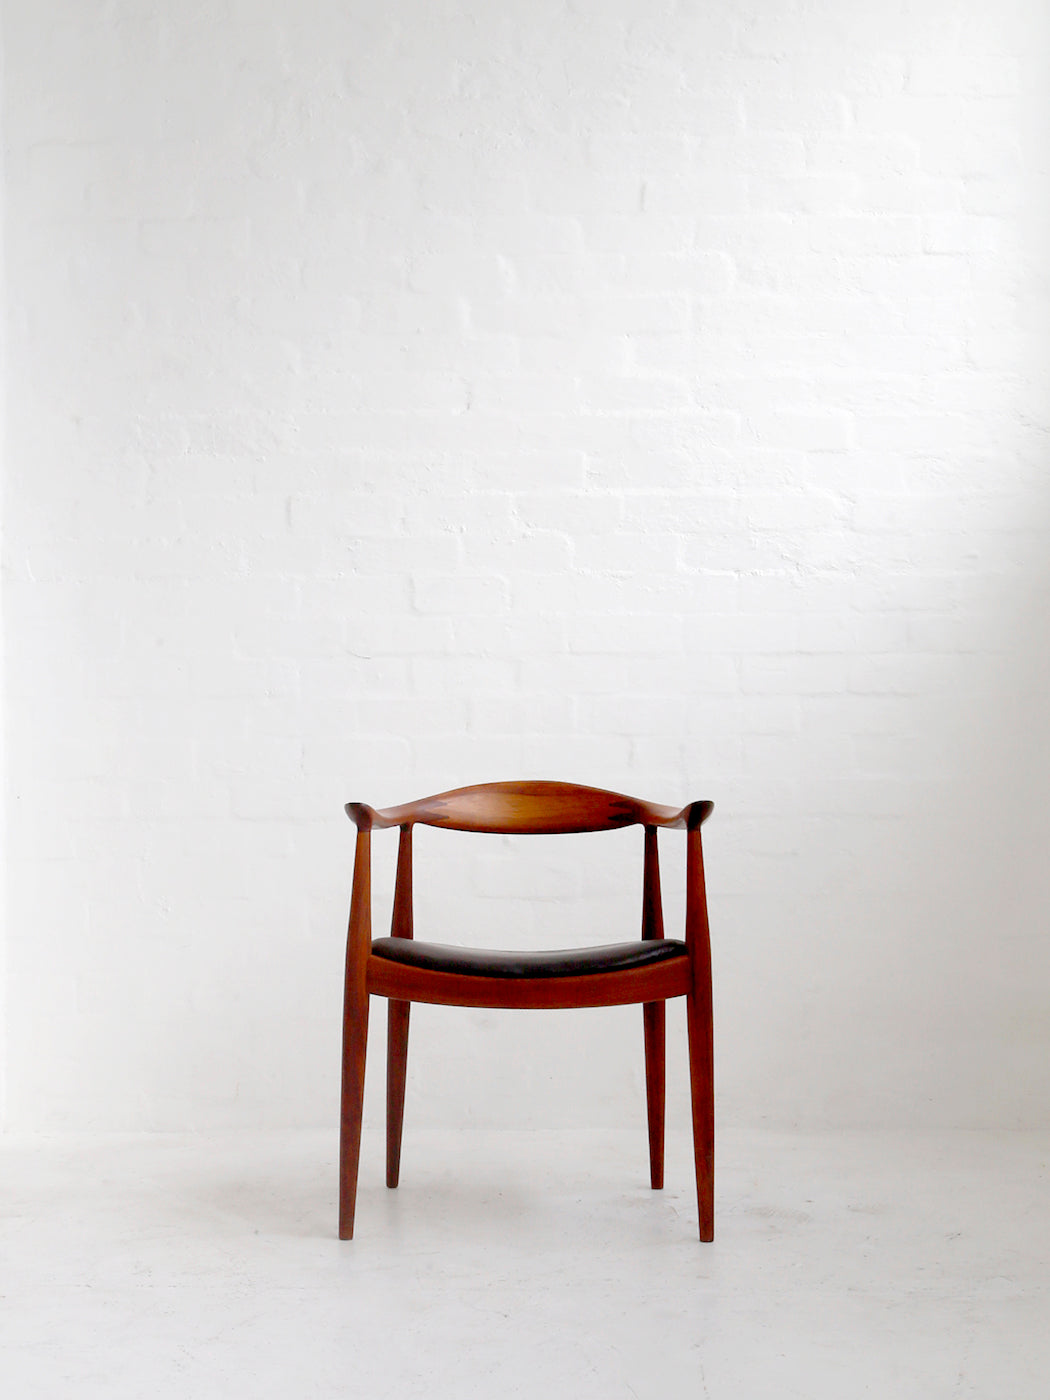 Hans J. Wegner 'Round' Chair